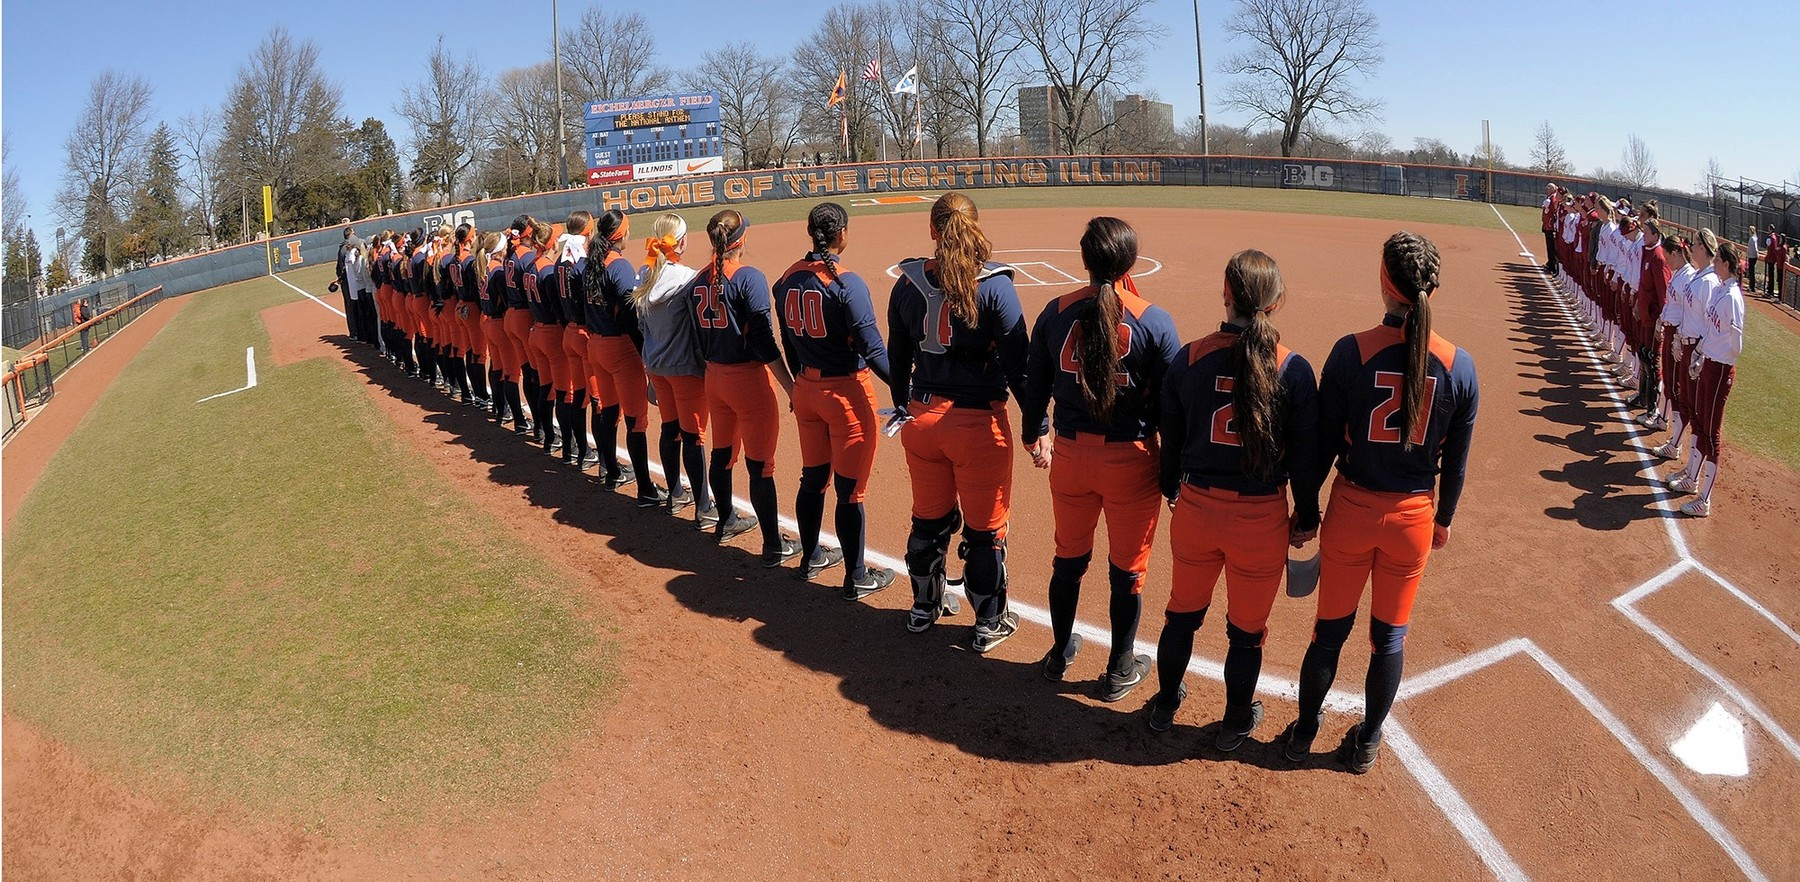 image of the Illini Softball team lined up before the start of a game